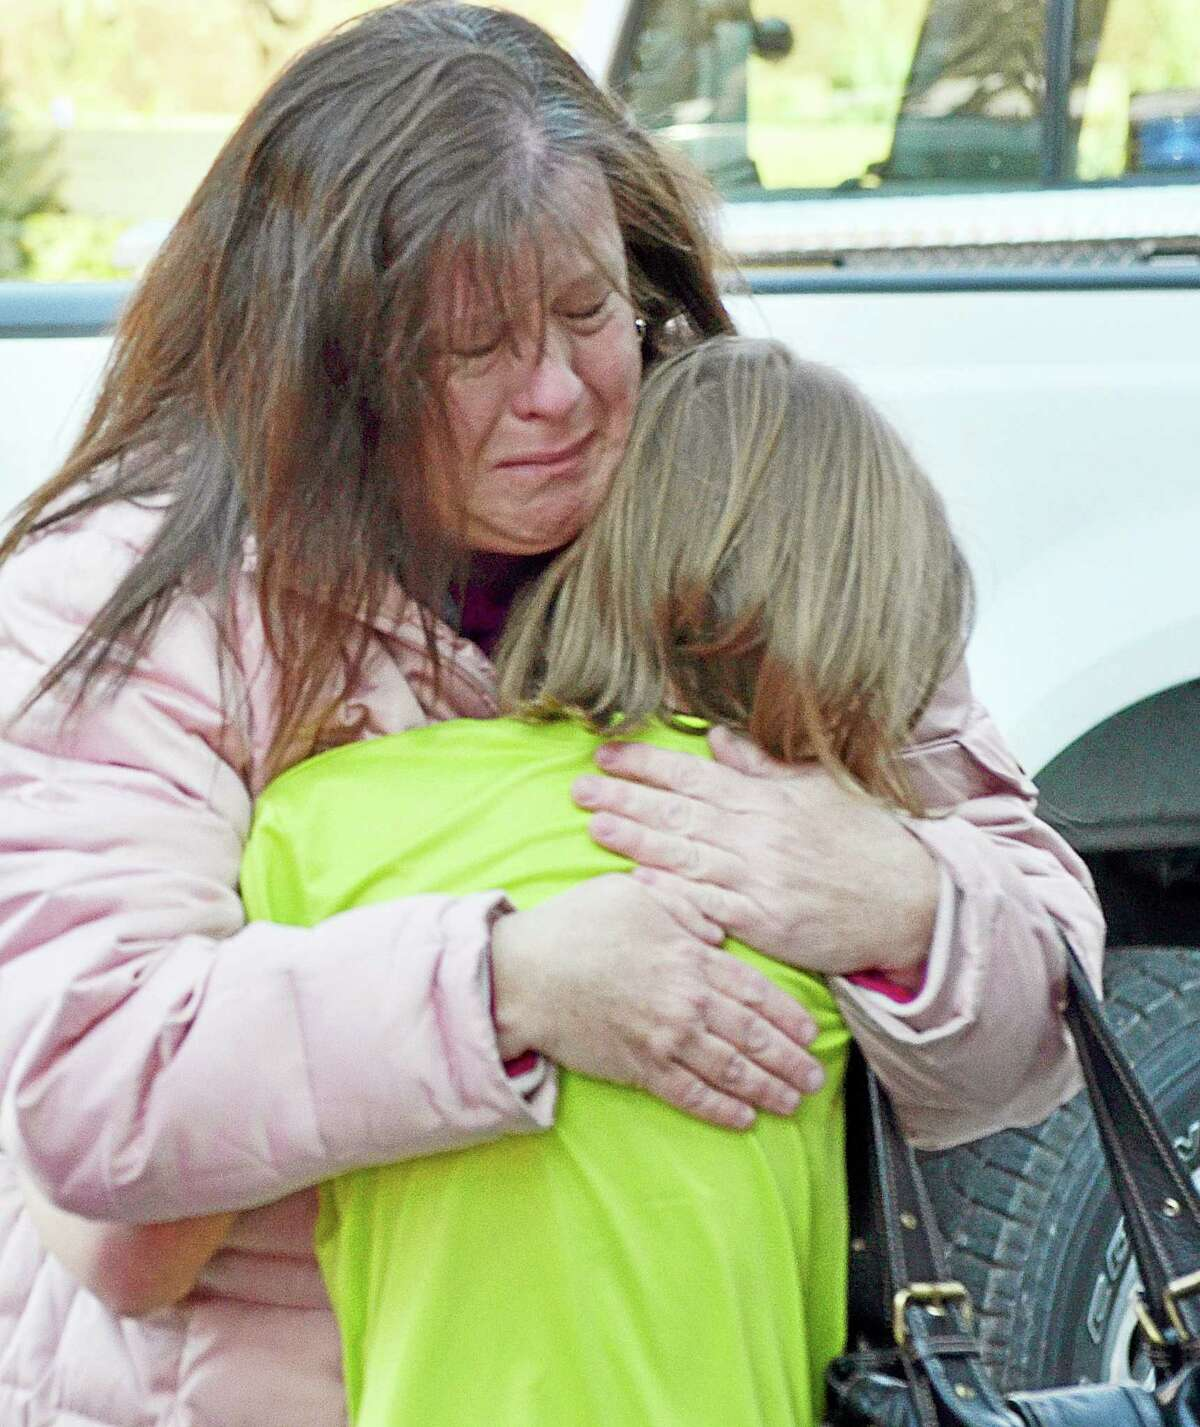 A mother hugs her daughter following a shooting at the Sandy Hook Elementary School in Newtown, Conn. on Dec. 14, 2012.